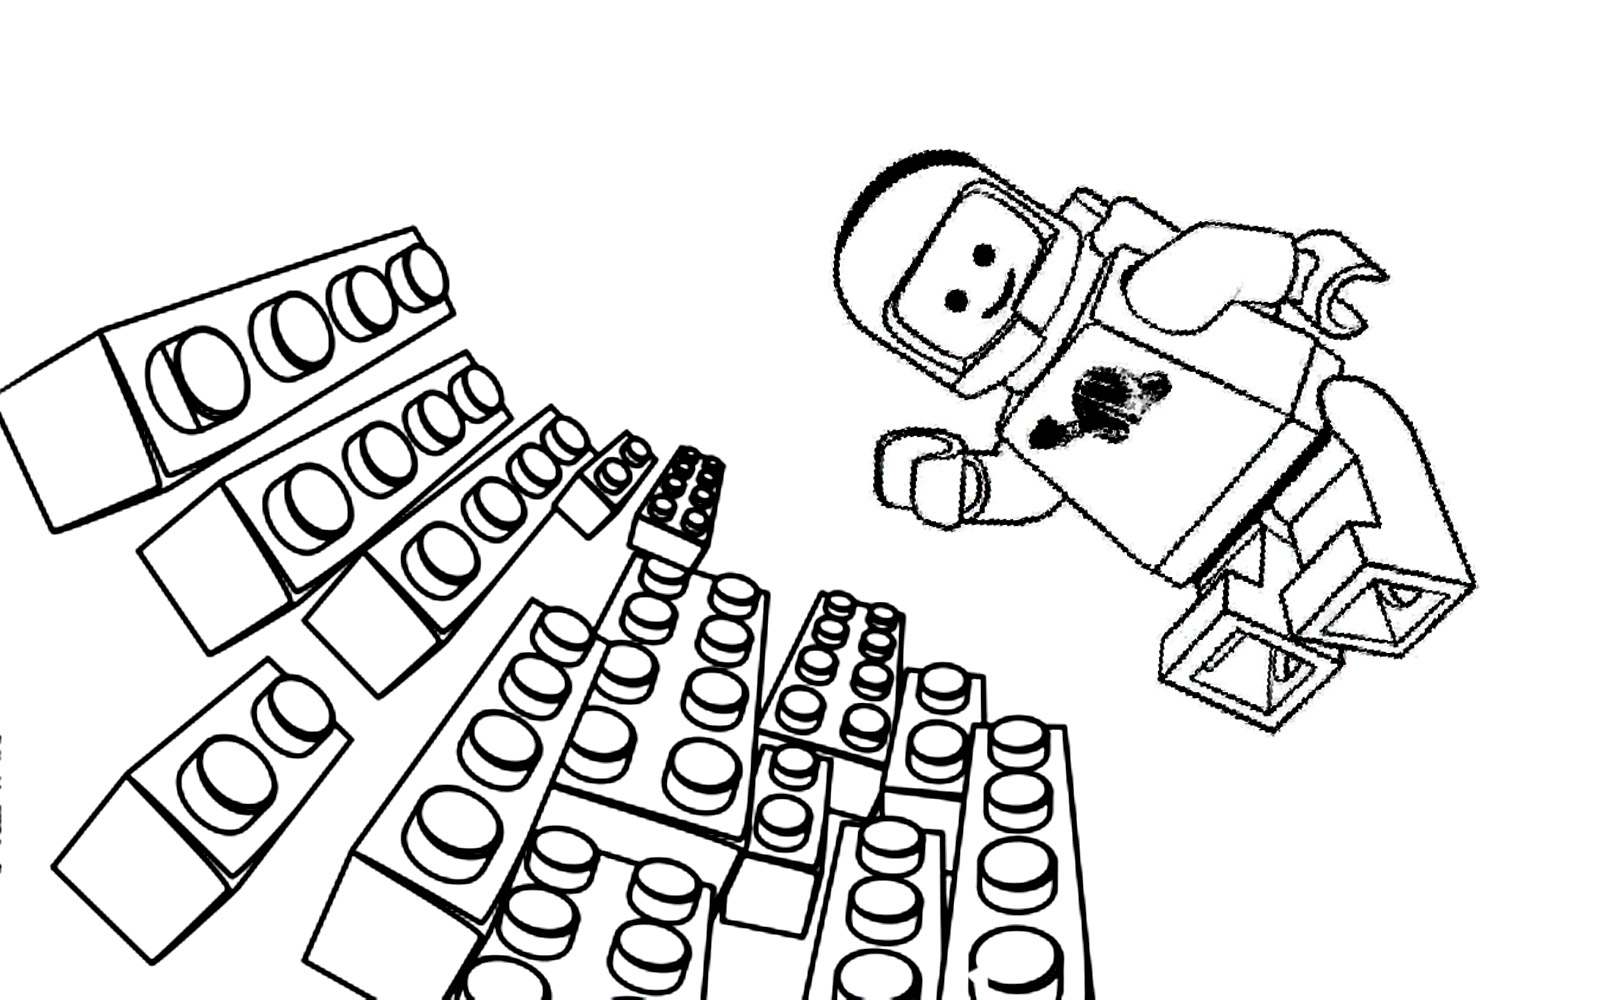 Lego The Big Adventure To Color For Children